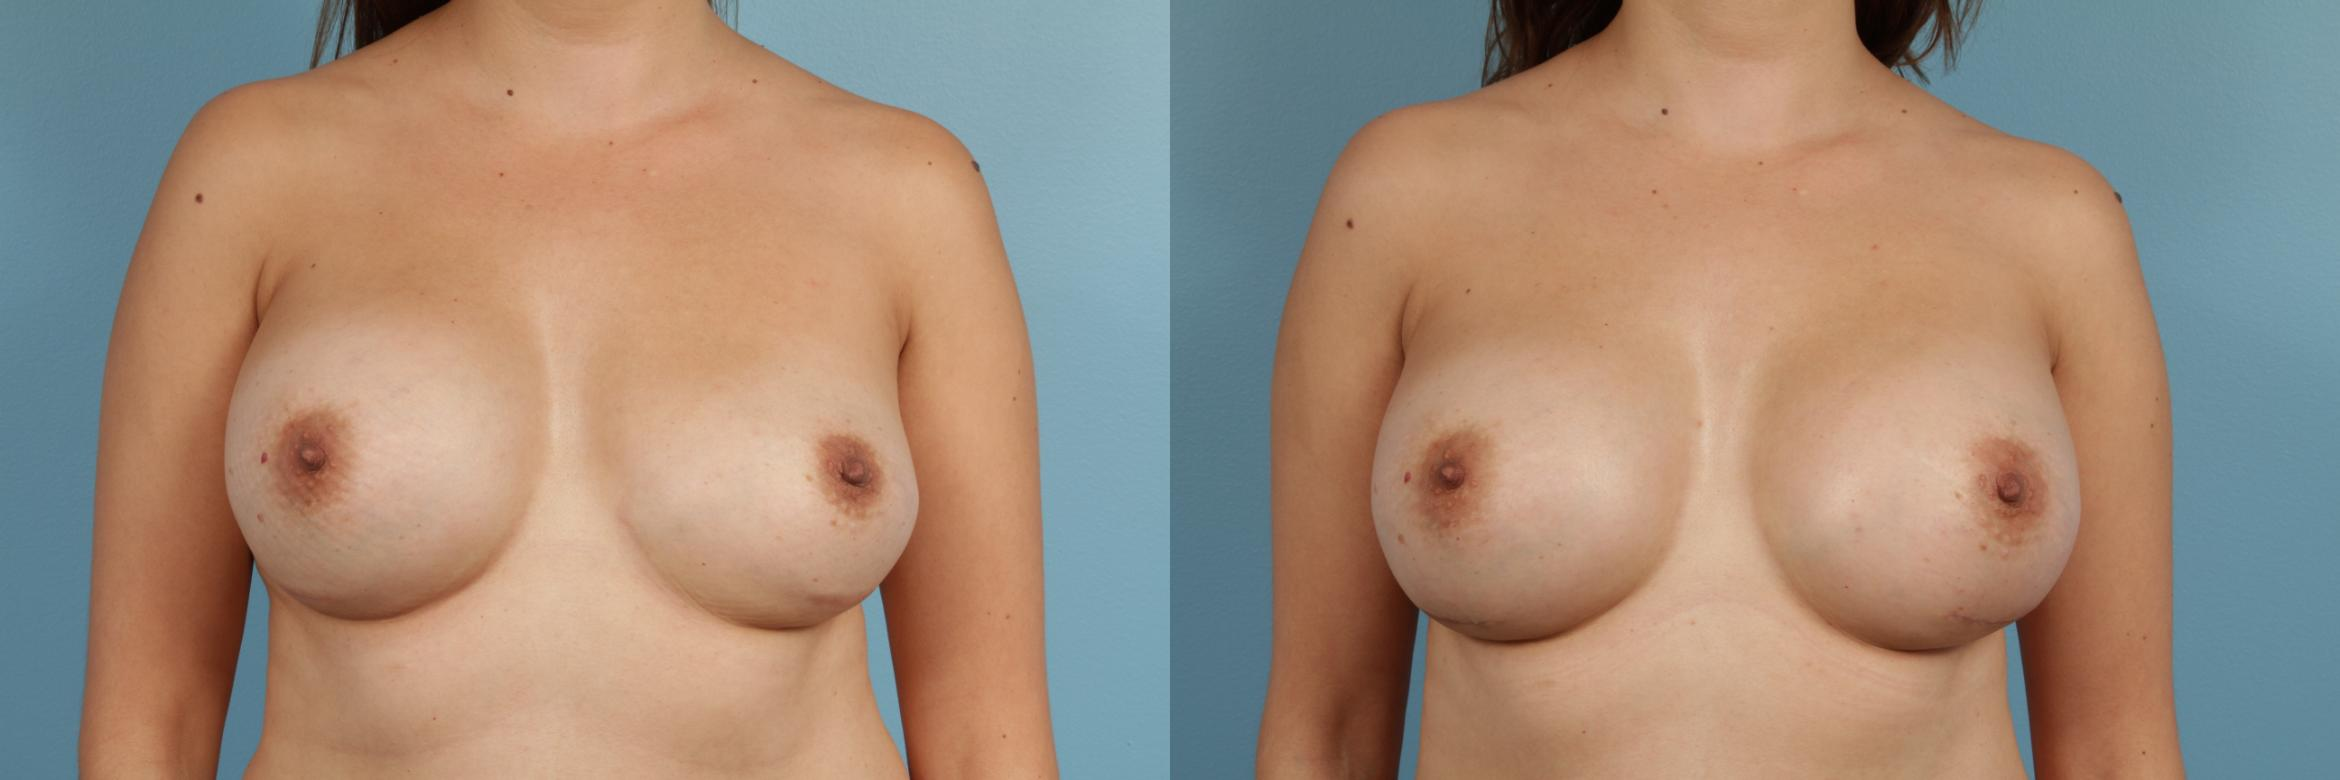 Breast Implant Replacement Case 163 Before & After View #1 | Chicago, IL | TLKM Plastic Surgery